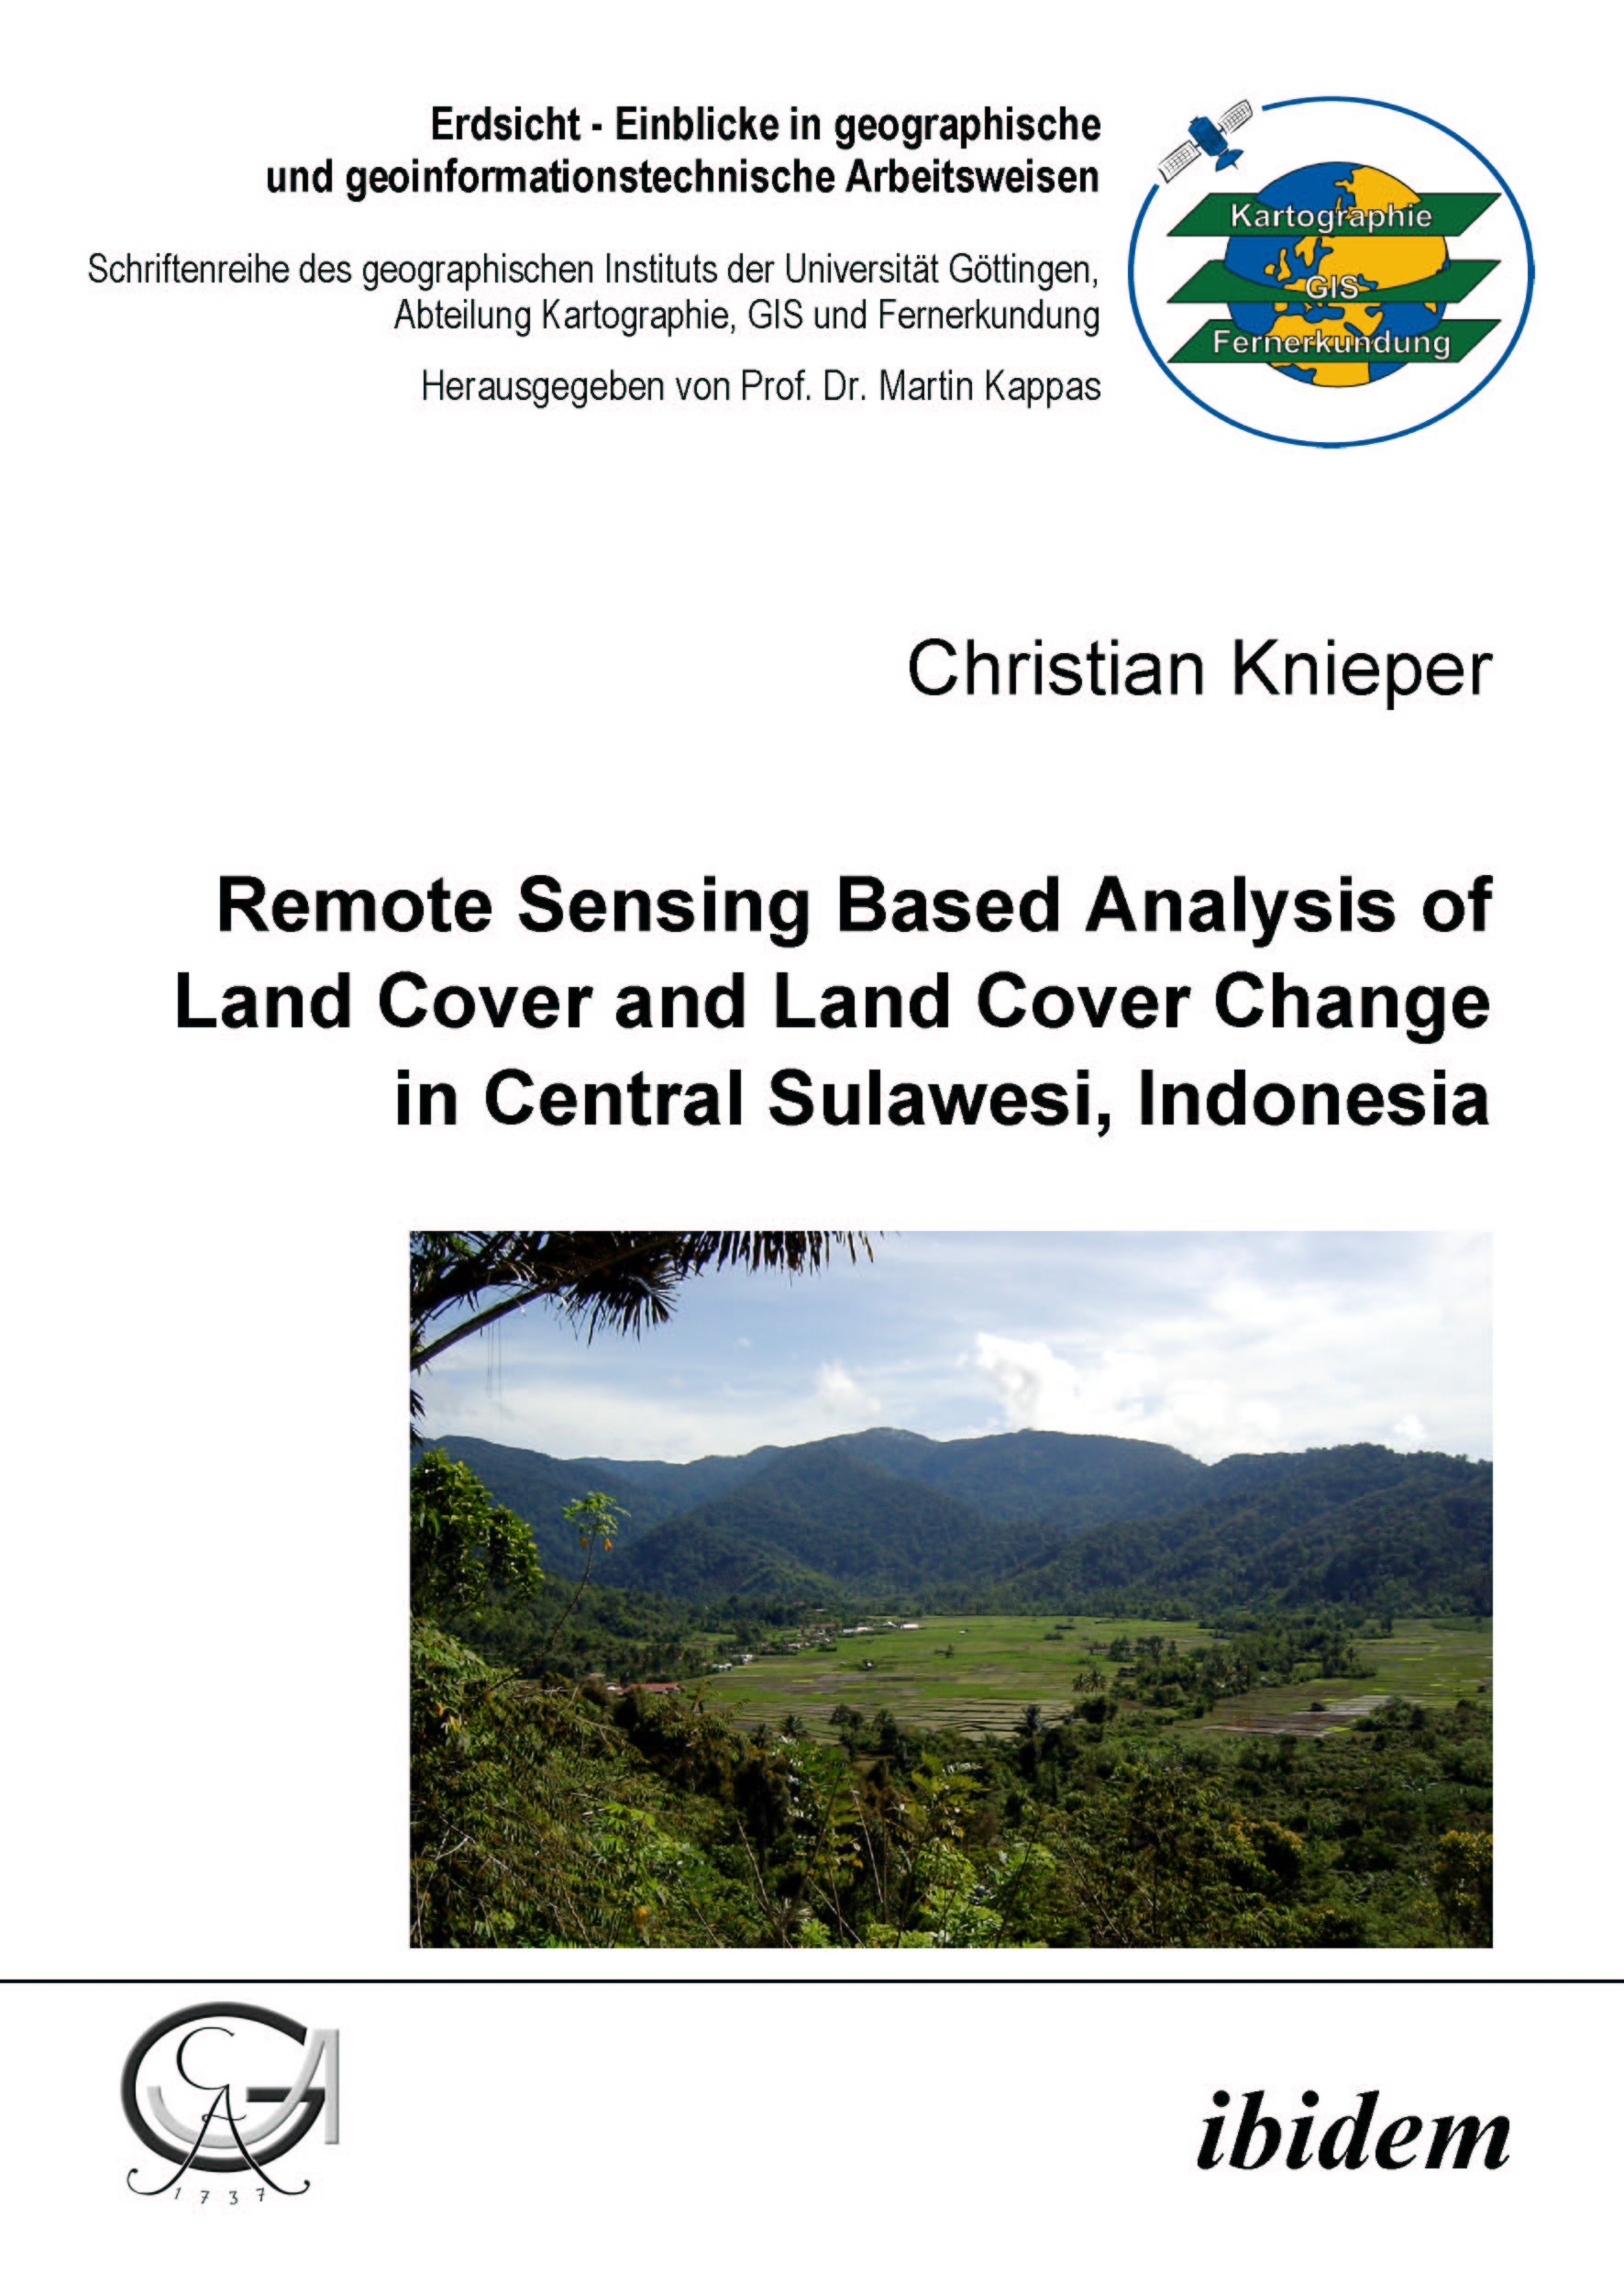 Remote Sensing Based Analysis of Land Cover and Land Cover Change in Central Sulawesi, Indonesia